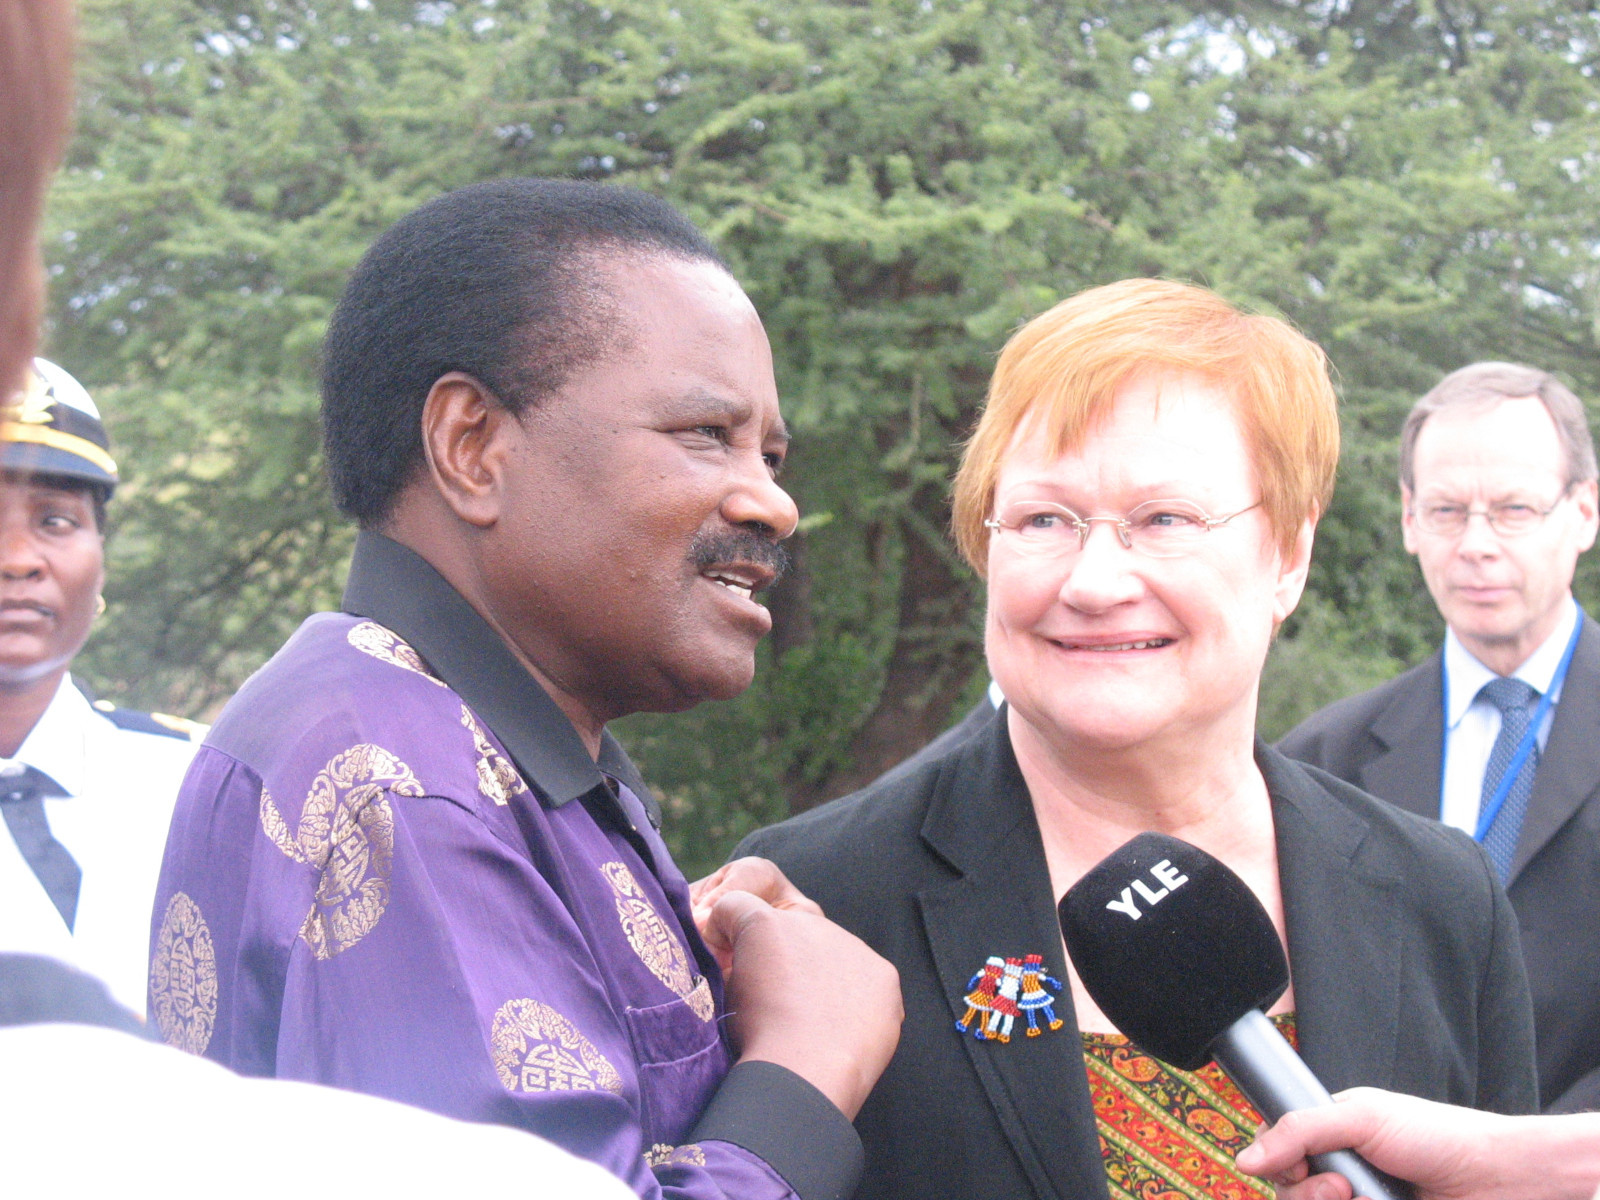 Finland's President Tarja Halonen and Namibia's Vice President Nickey Iyambo being interviewed by the Finnish broadcasting company YLE.